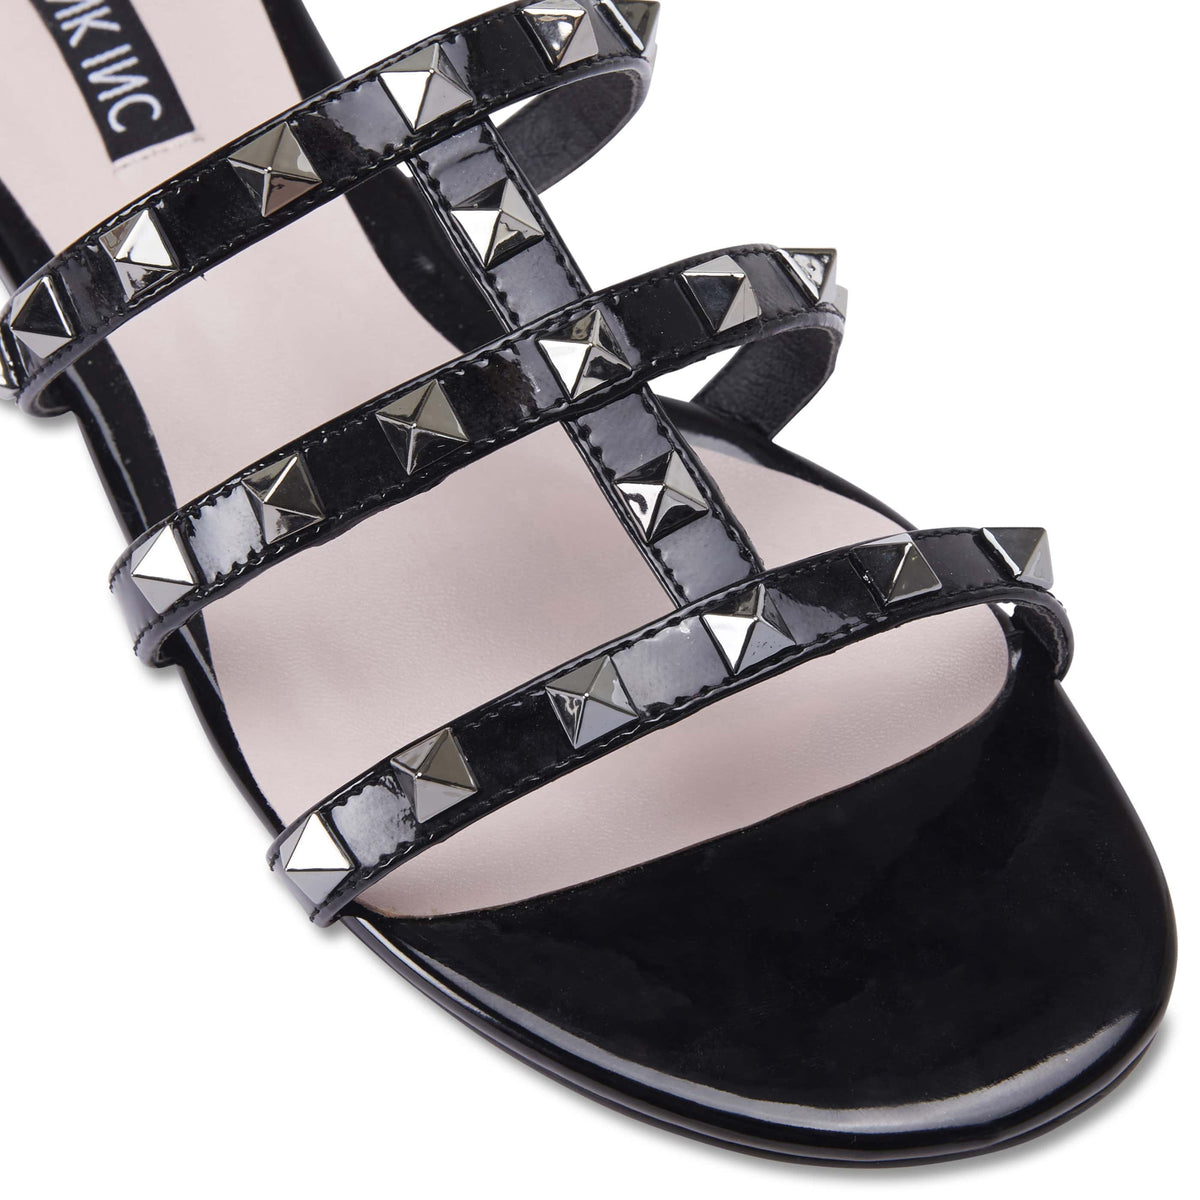 Spain Slide in Black Patent